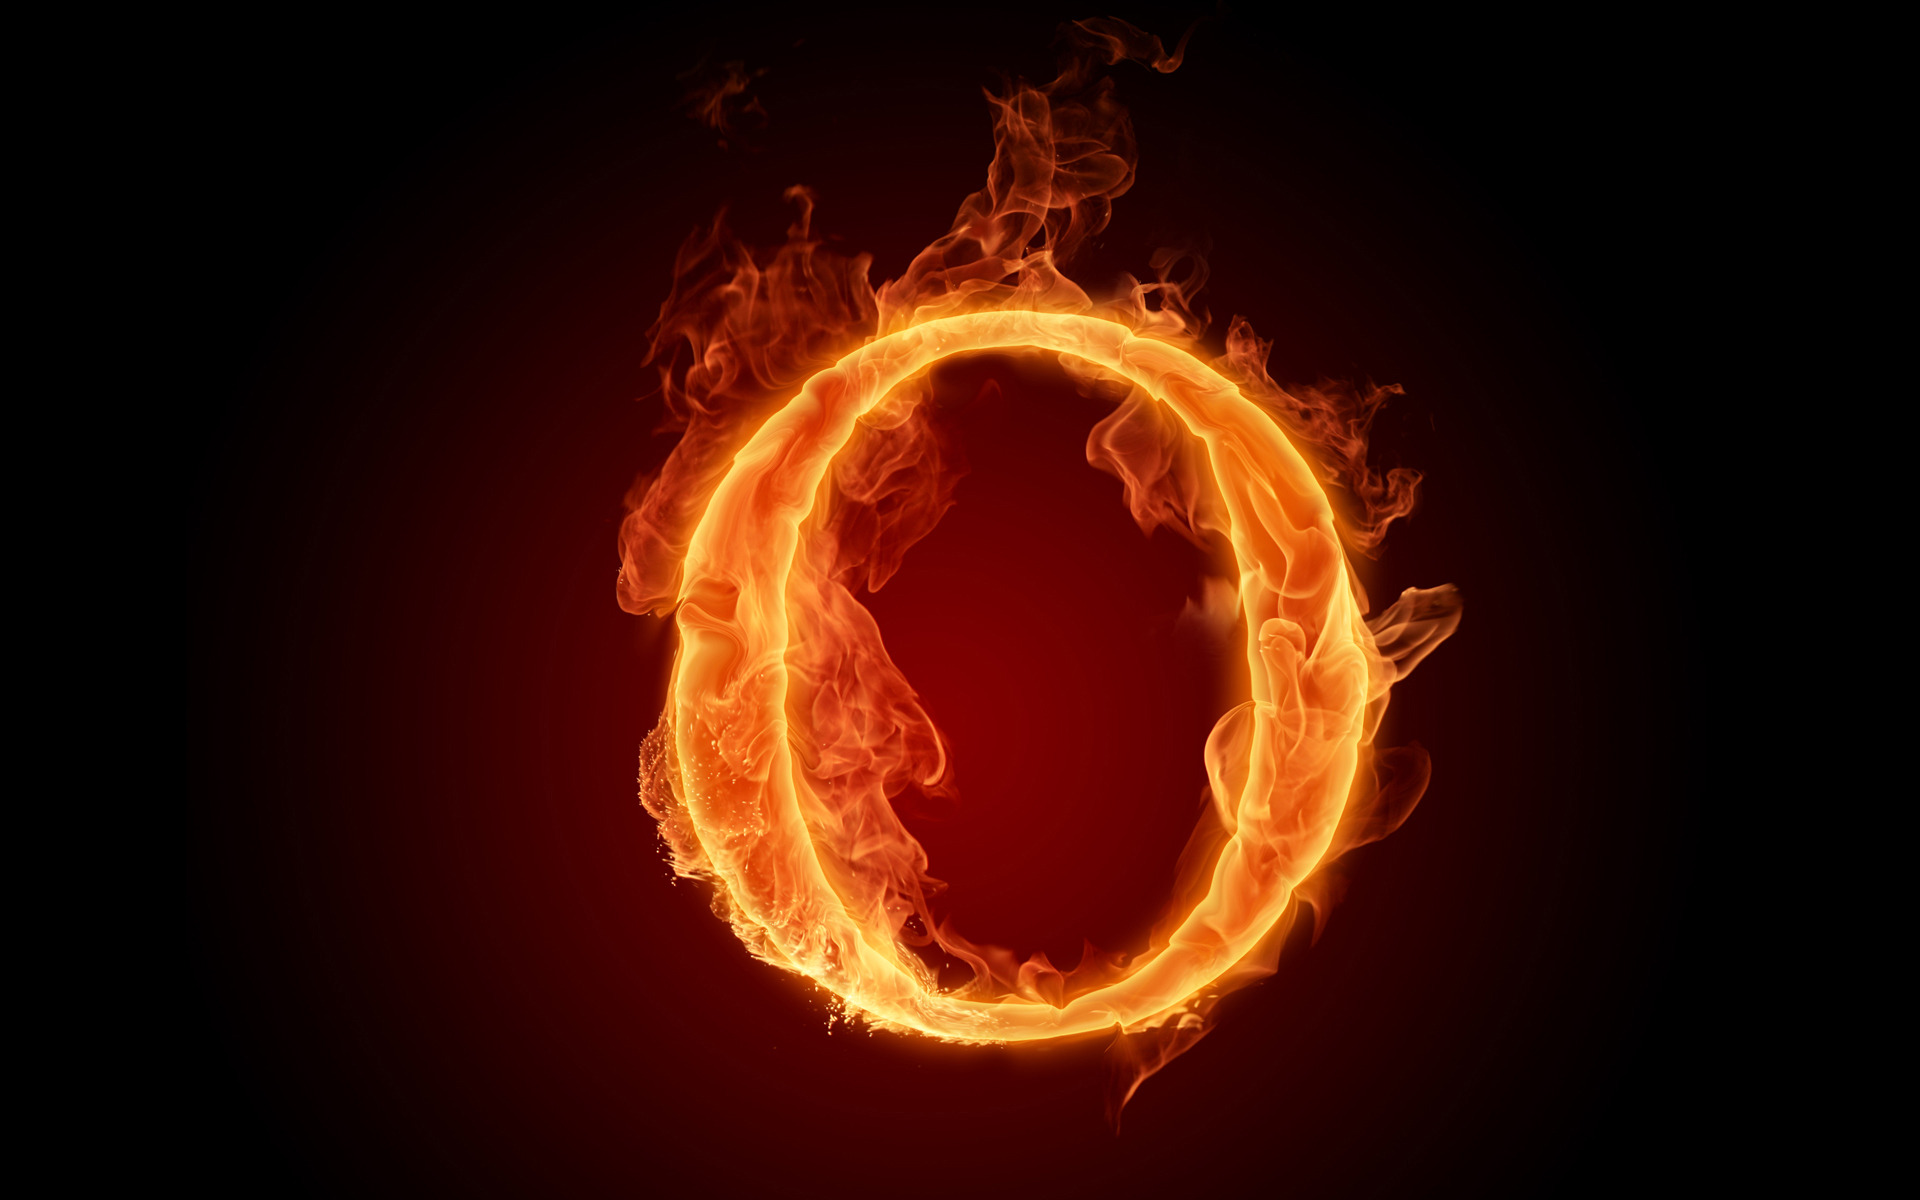 a63196fb3151a6 Fire Fonts - Fiery Letters and Fiery Numbers 1920x1200 NO .